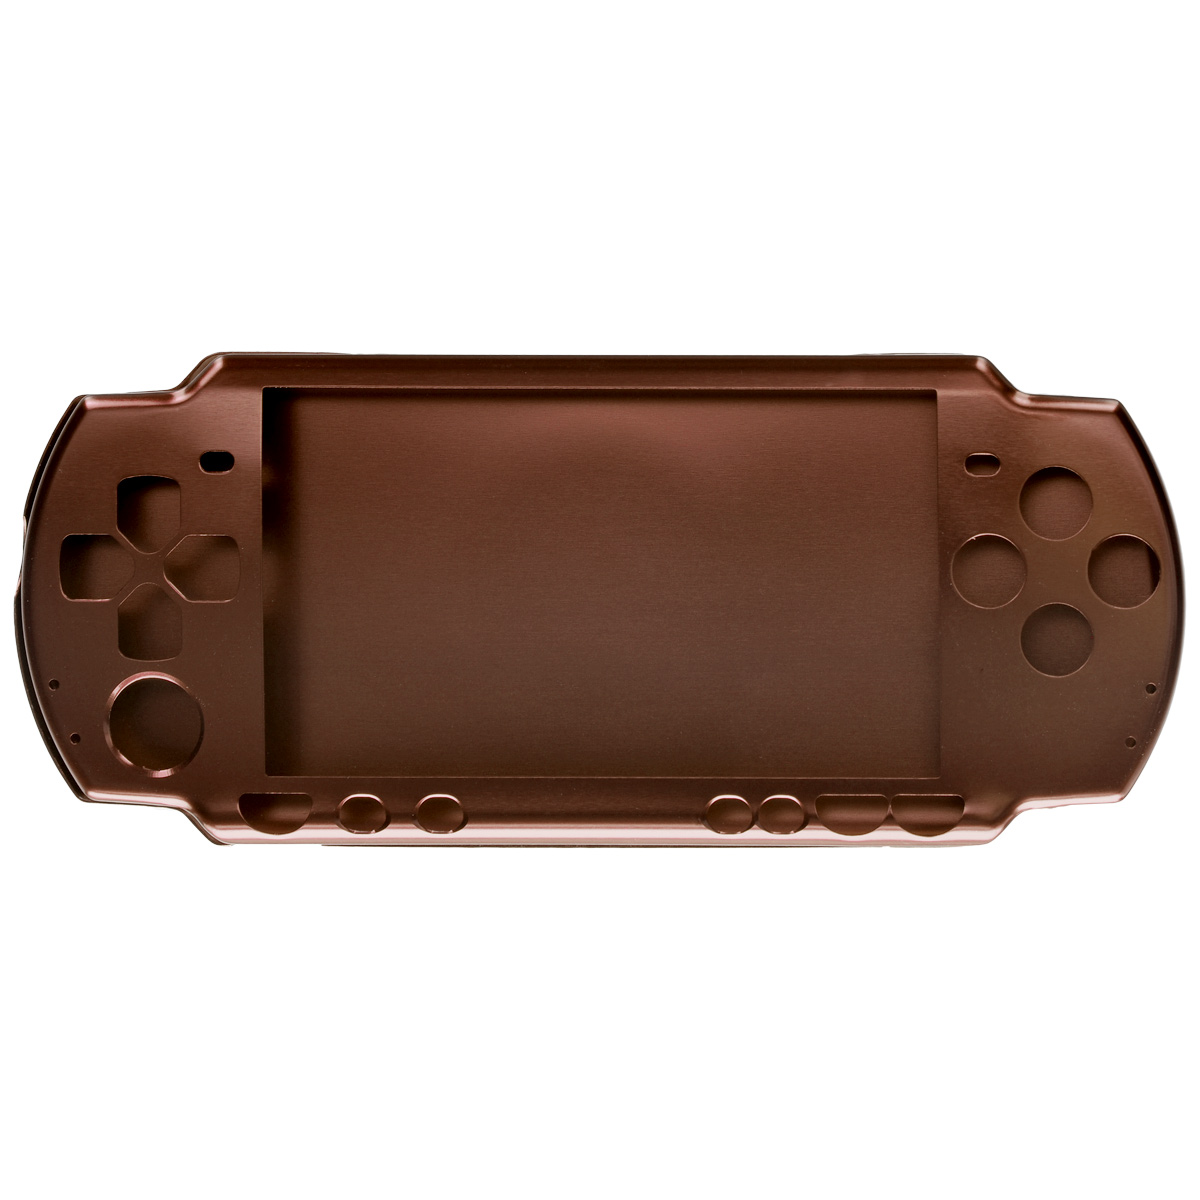 Алюминиевый защитный корпус Game Guru Luxе для Sony PSP 2000/3000 (бронза) repair parts replacement buttons for psp slim 2000 blue